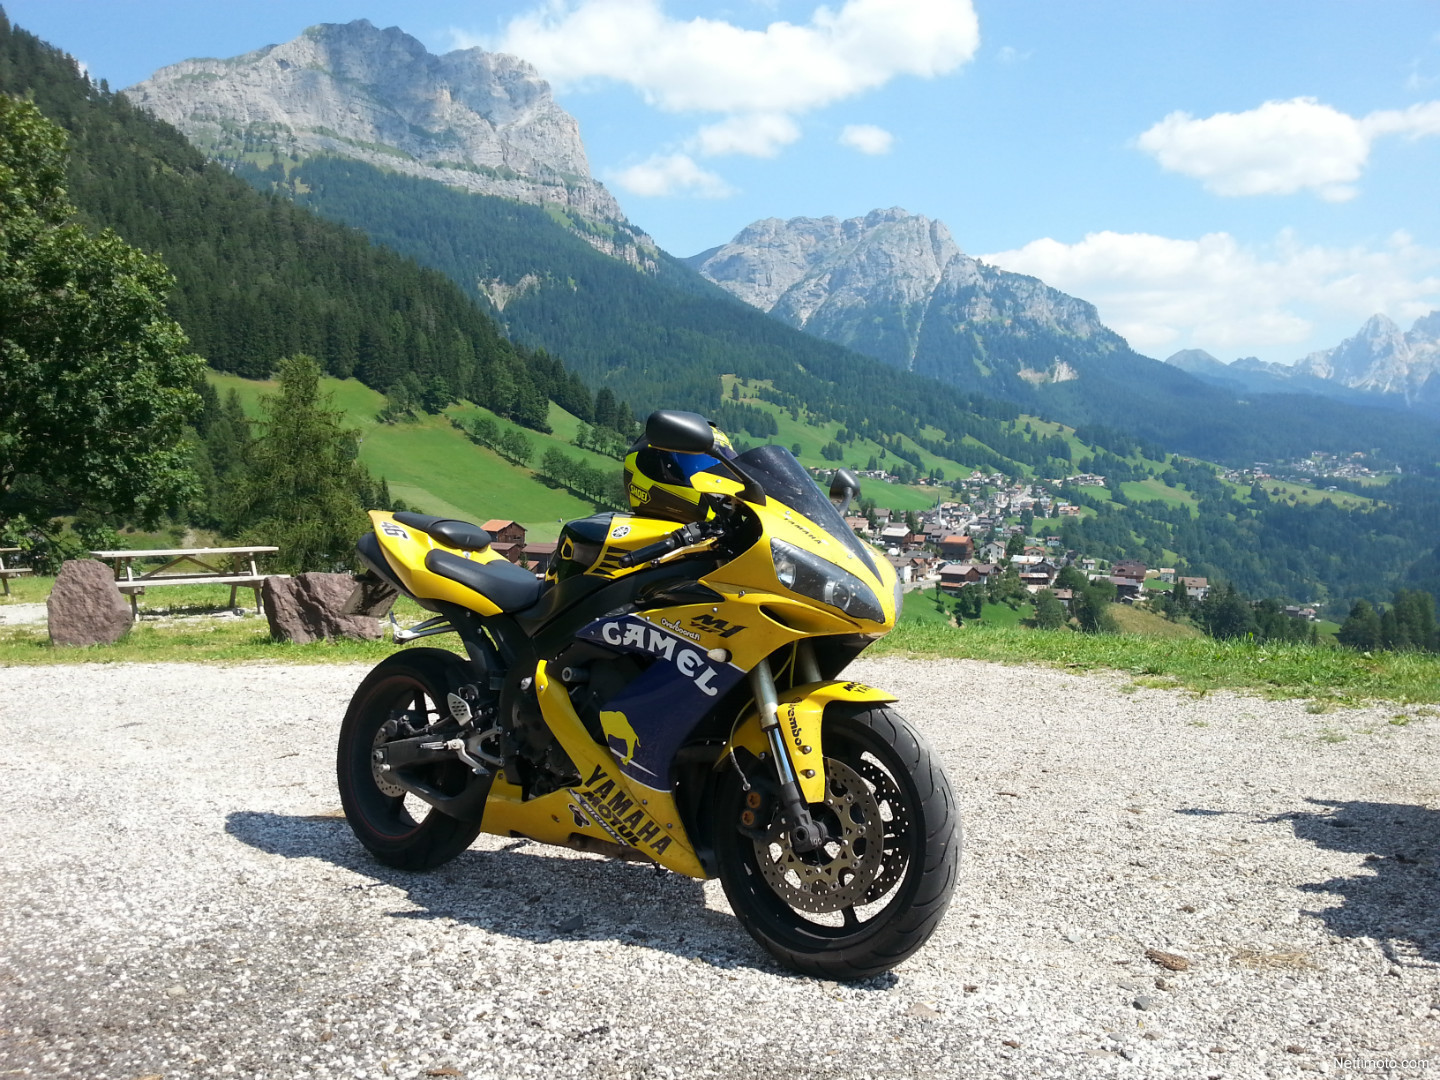 Yamaha yzf r1 m1 valentino rossi replica 1 000 cm 2006 for Yamaha m1 for sale